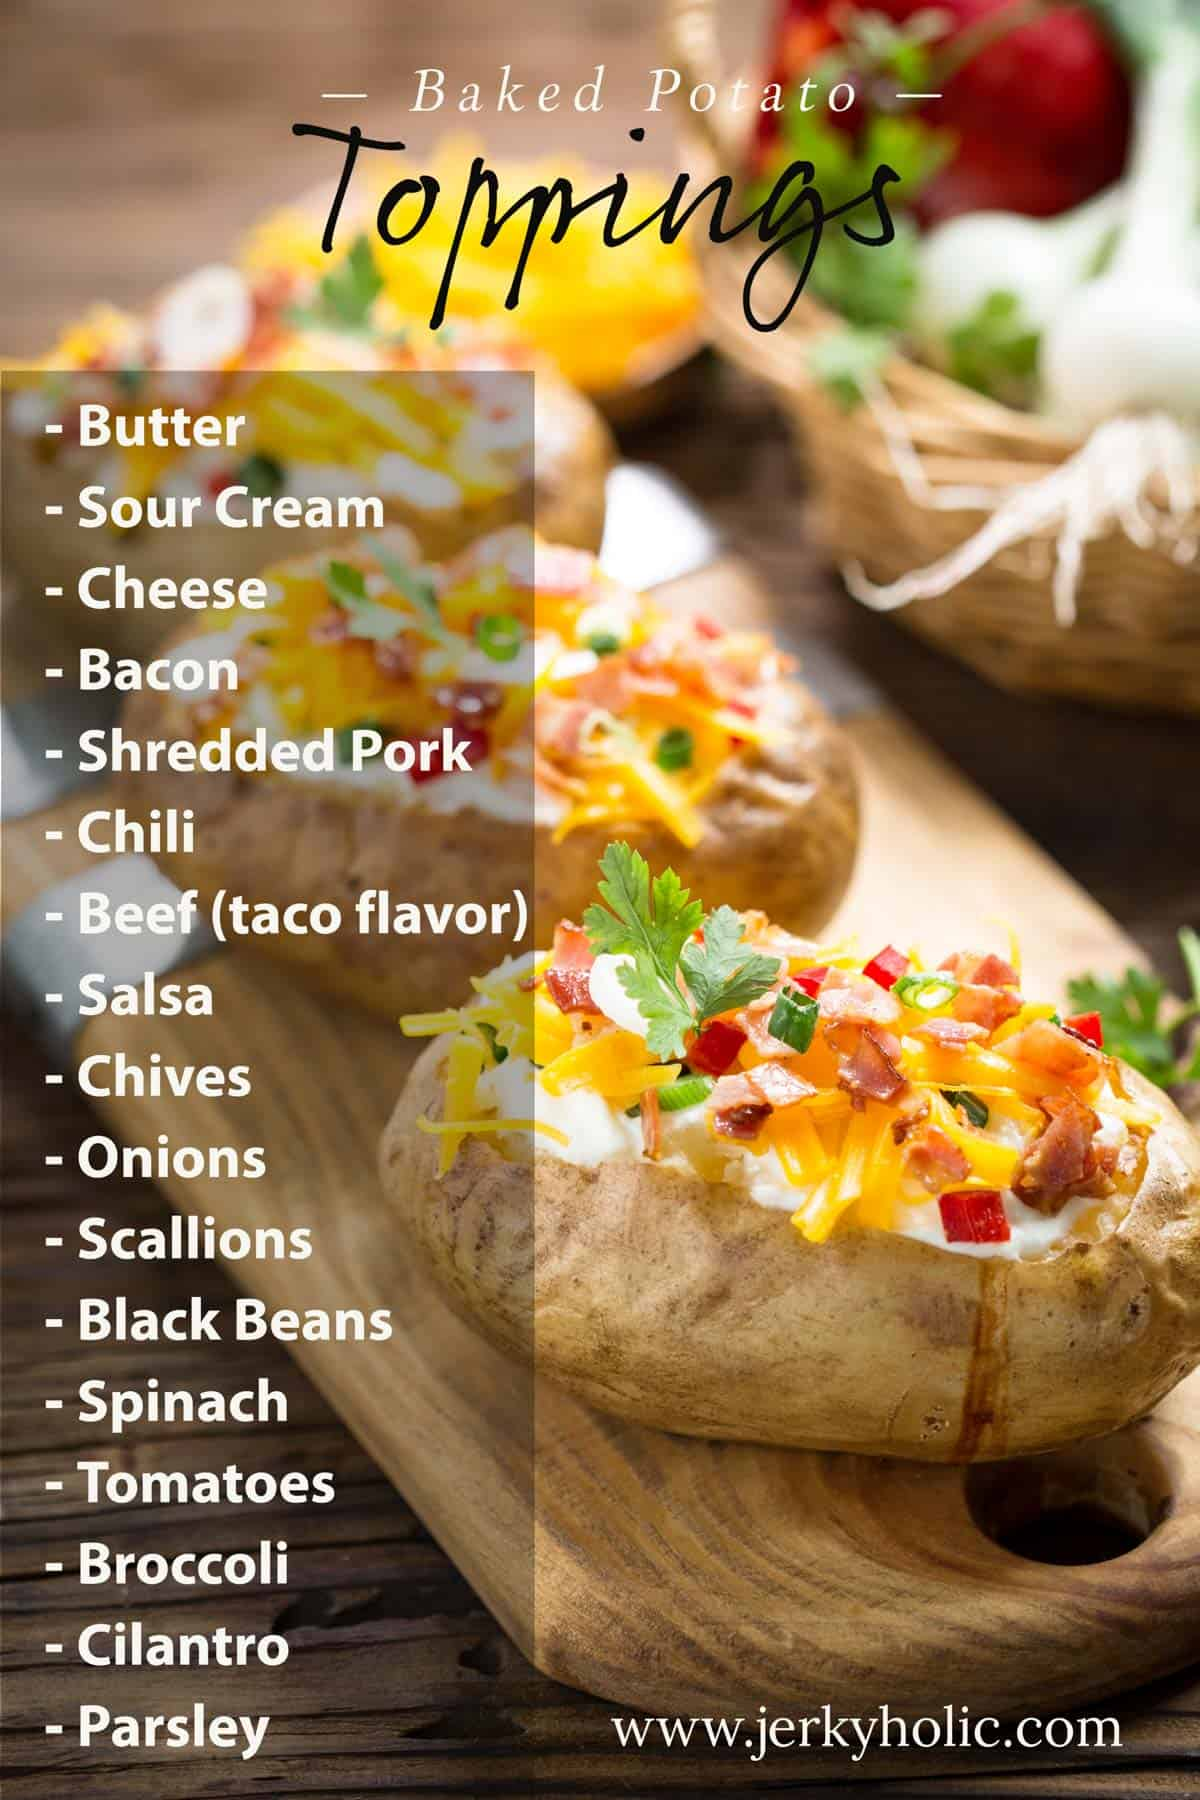 List of baked potato toppings with picture of potatoes in background